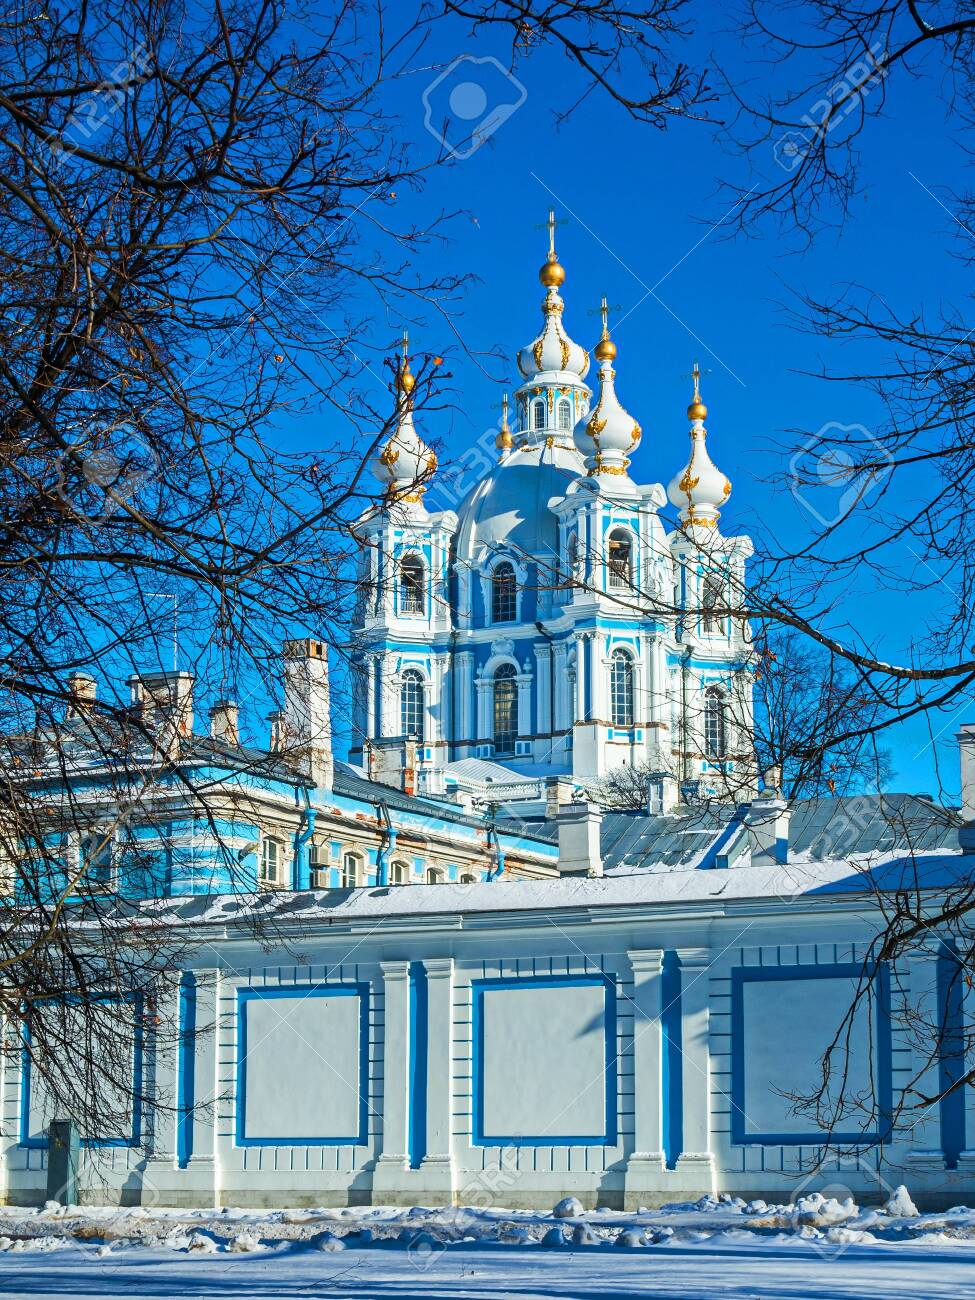 White Baroque lace on the blue facades of Rastrelli. Smolny Cathedral in St. Petersburg. - 118780679